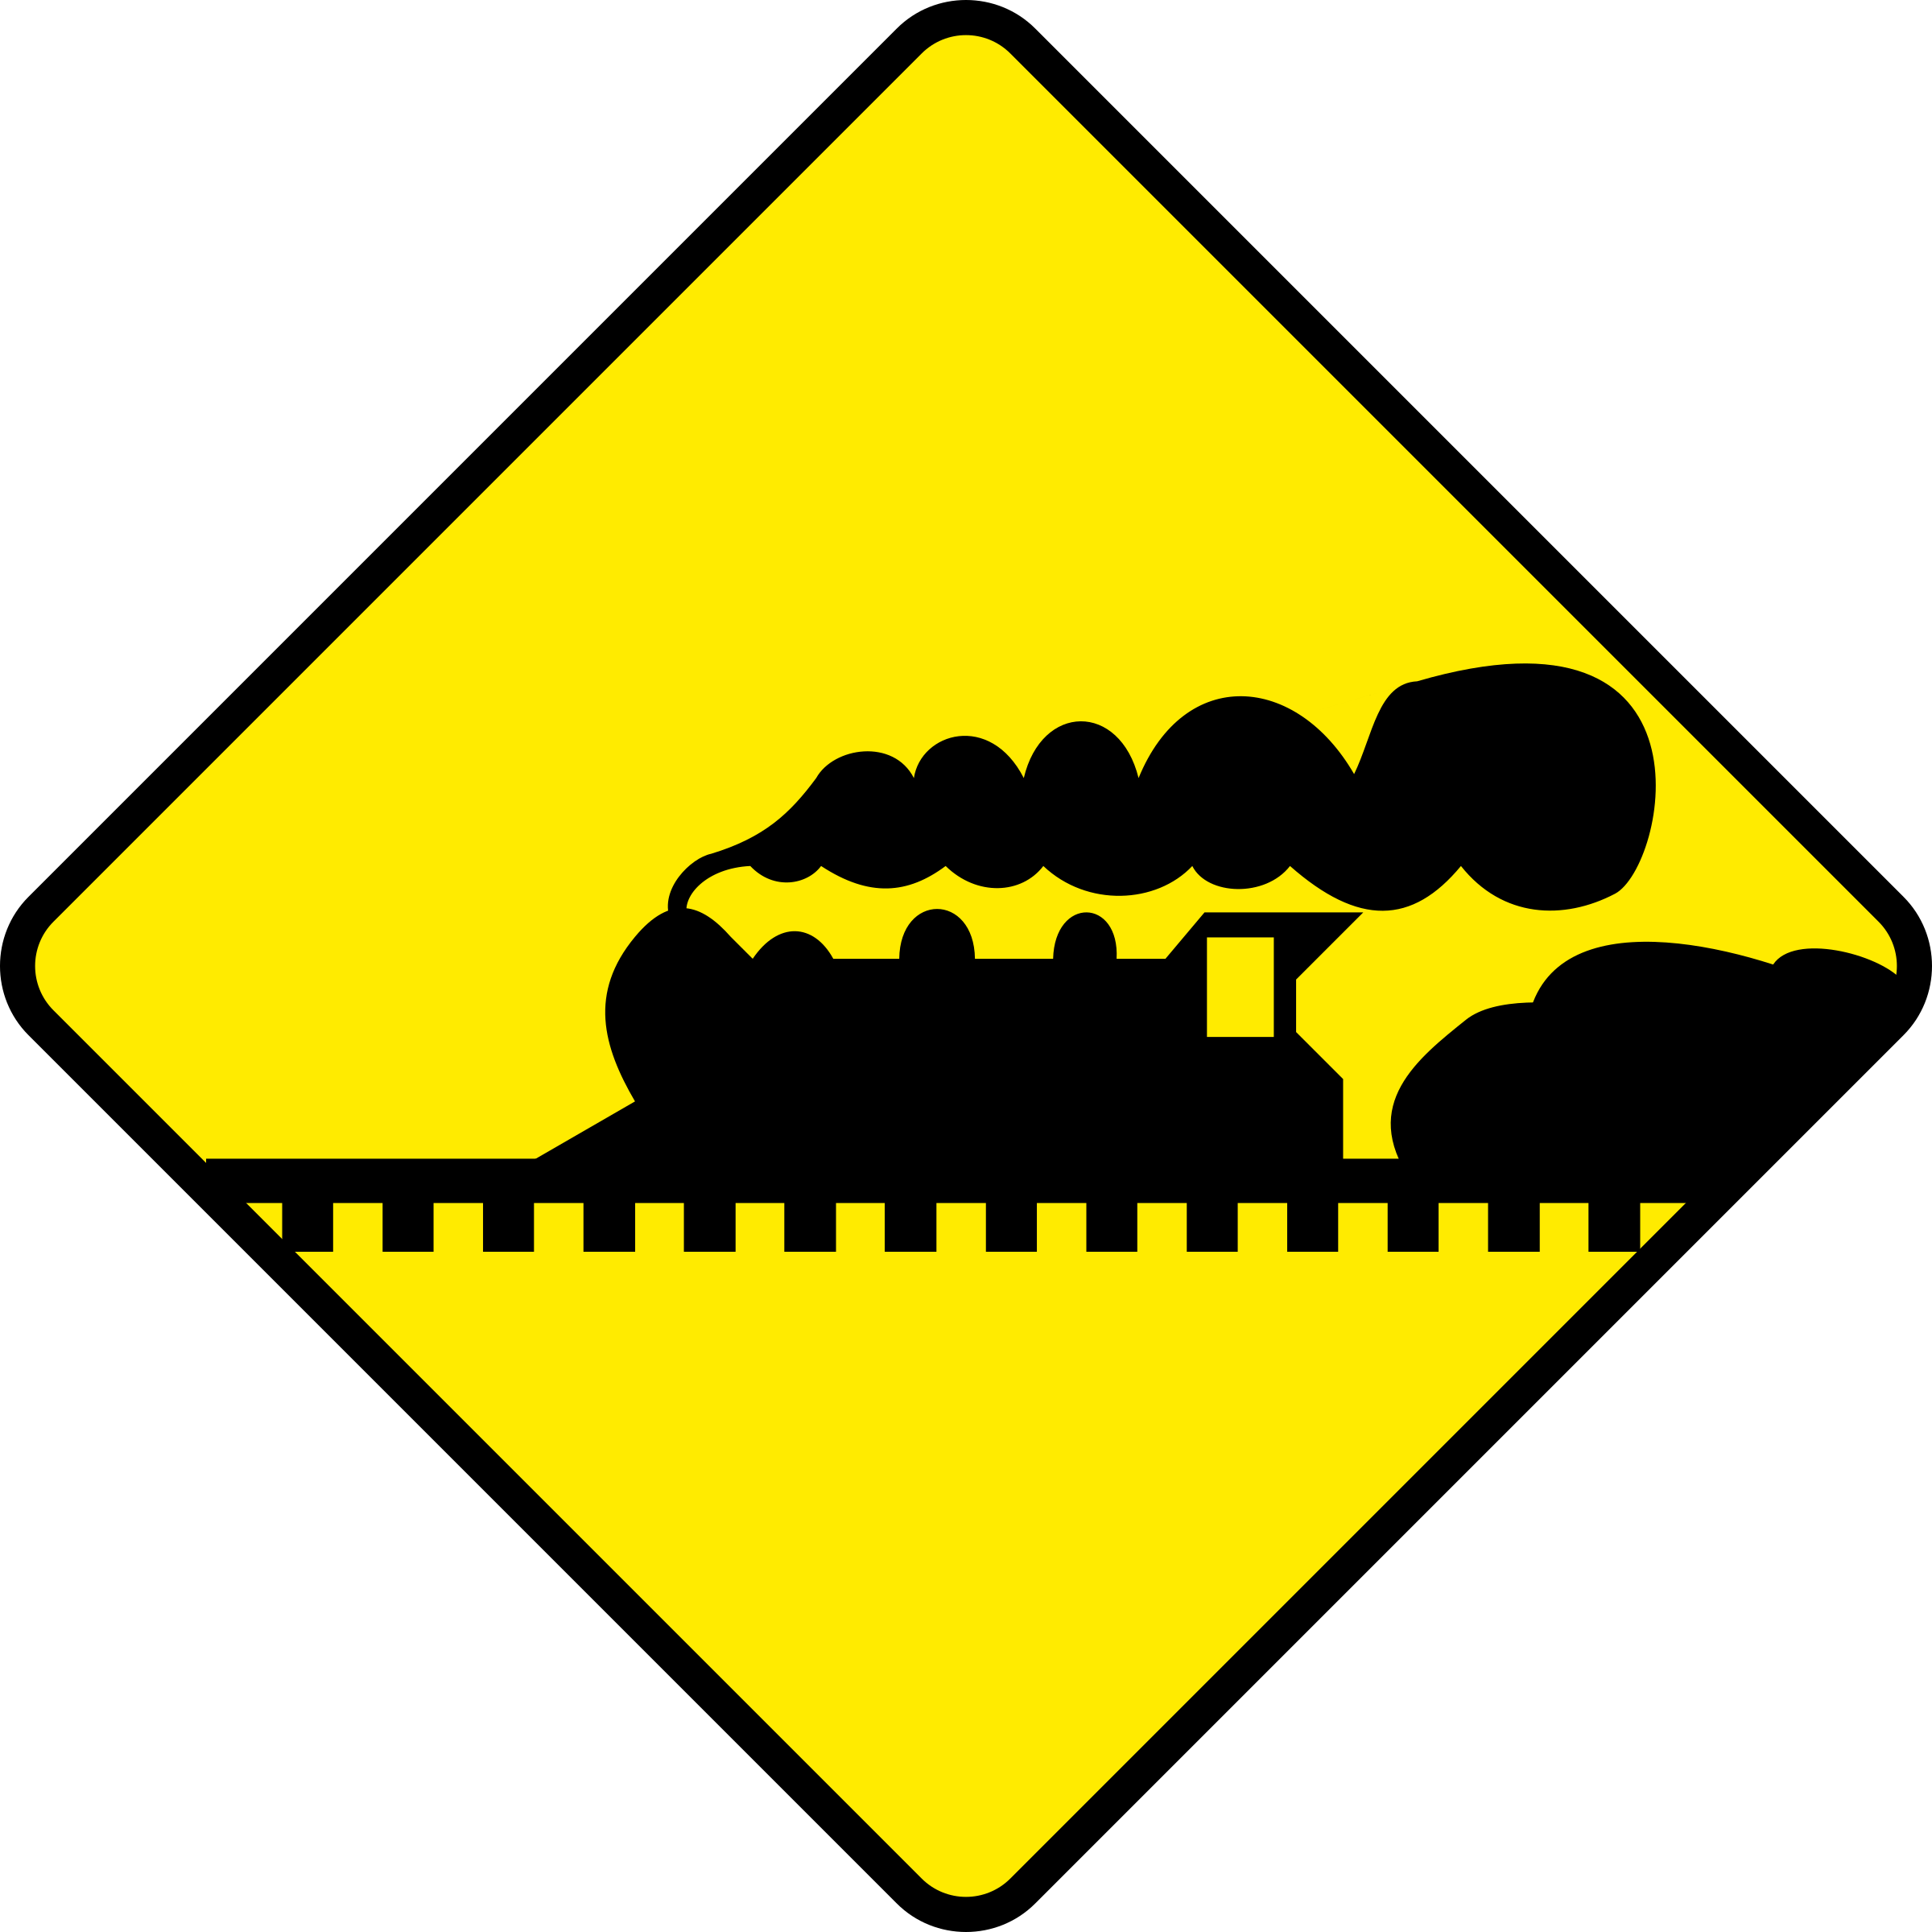 Train Road Sign by j4p4n